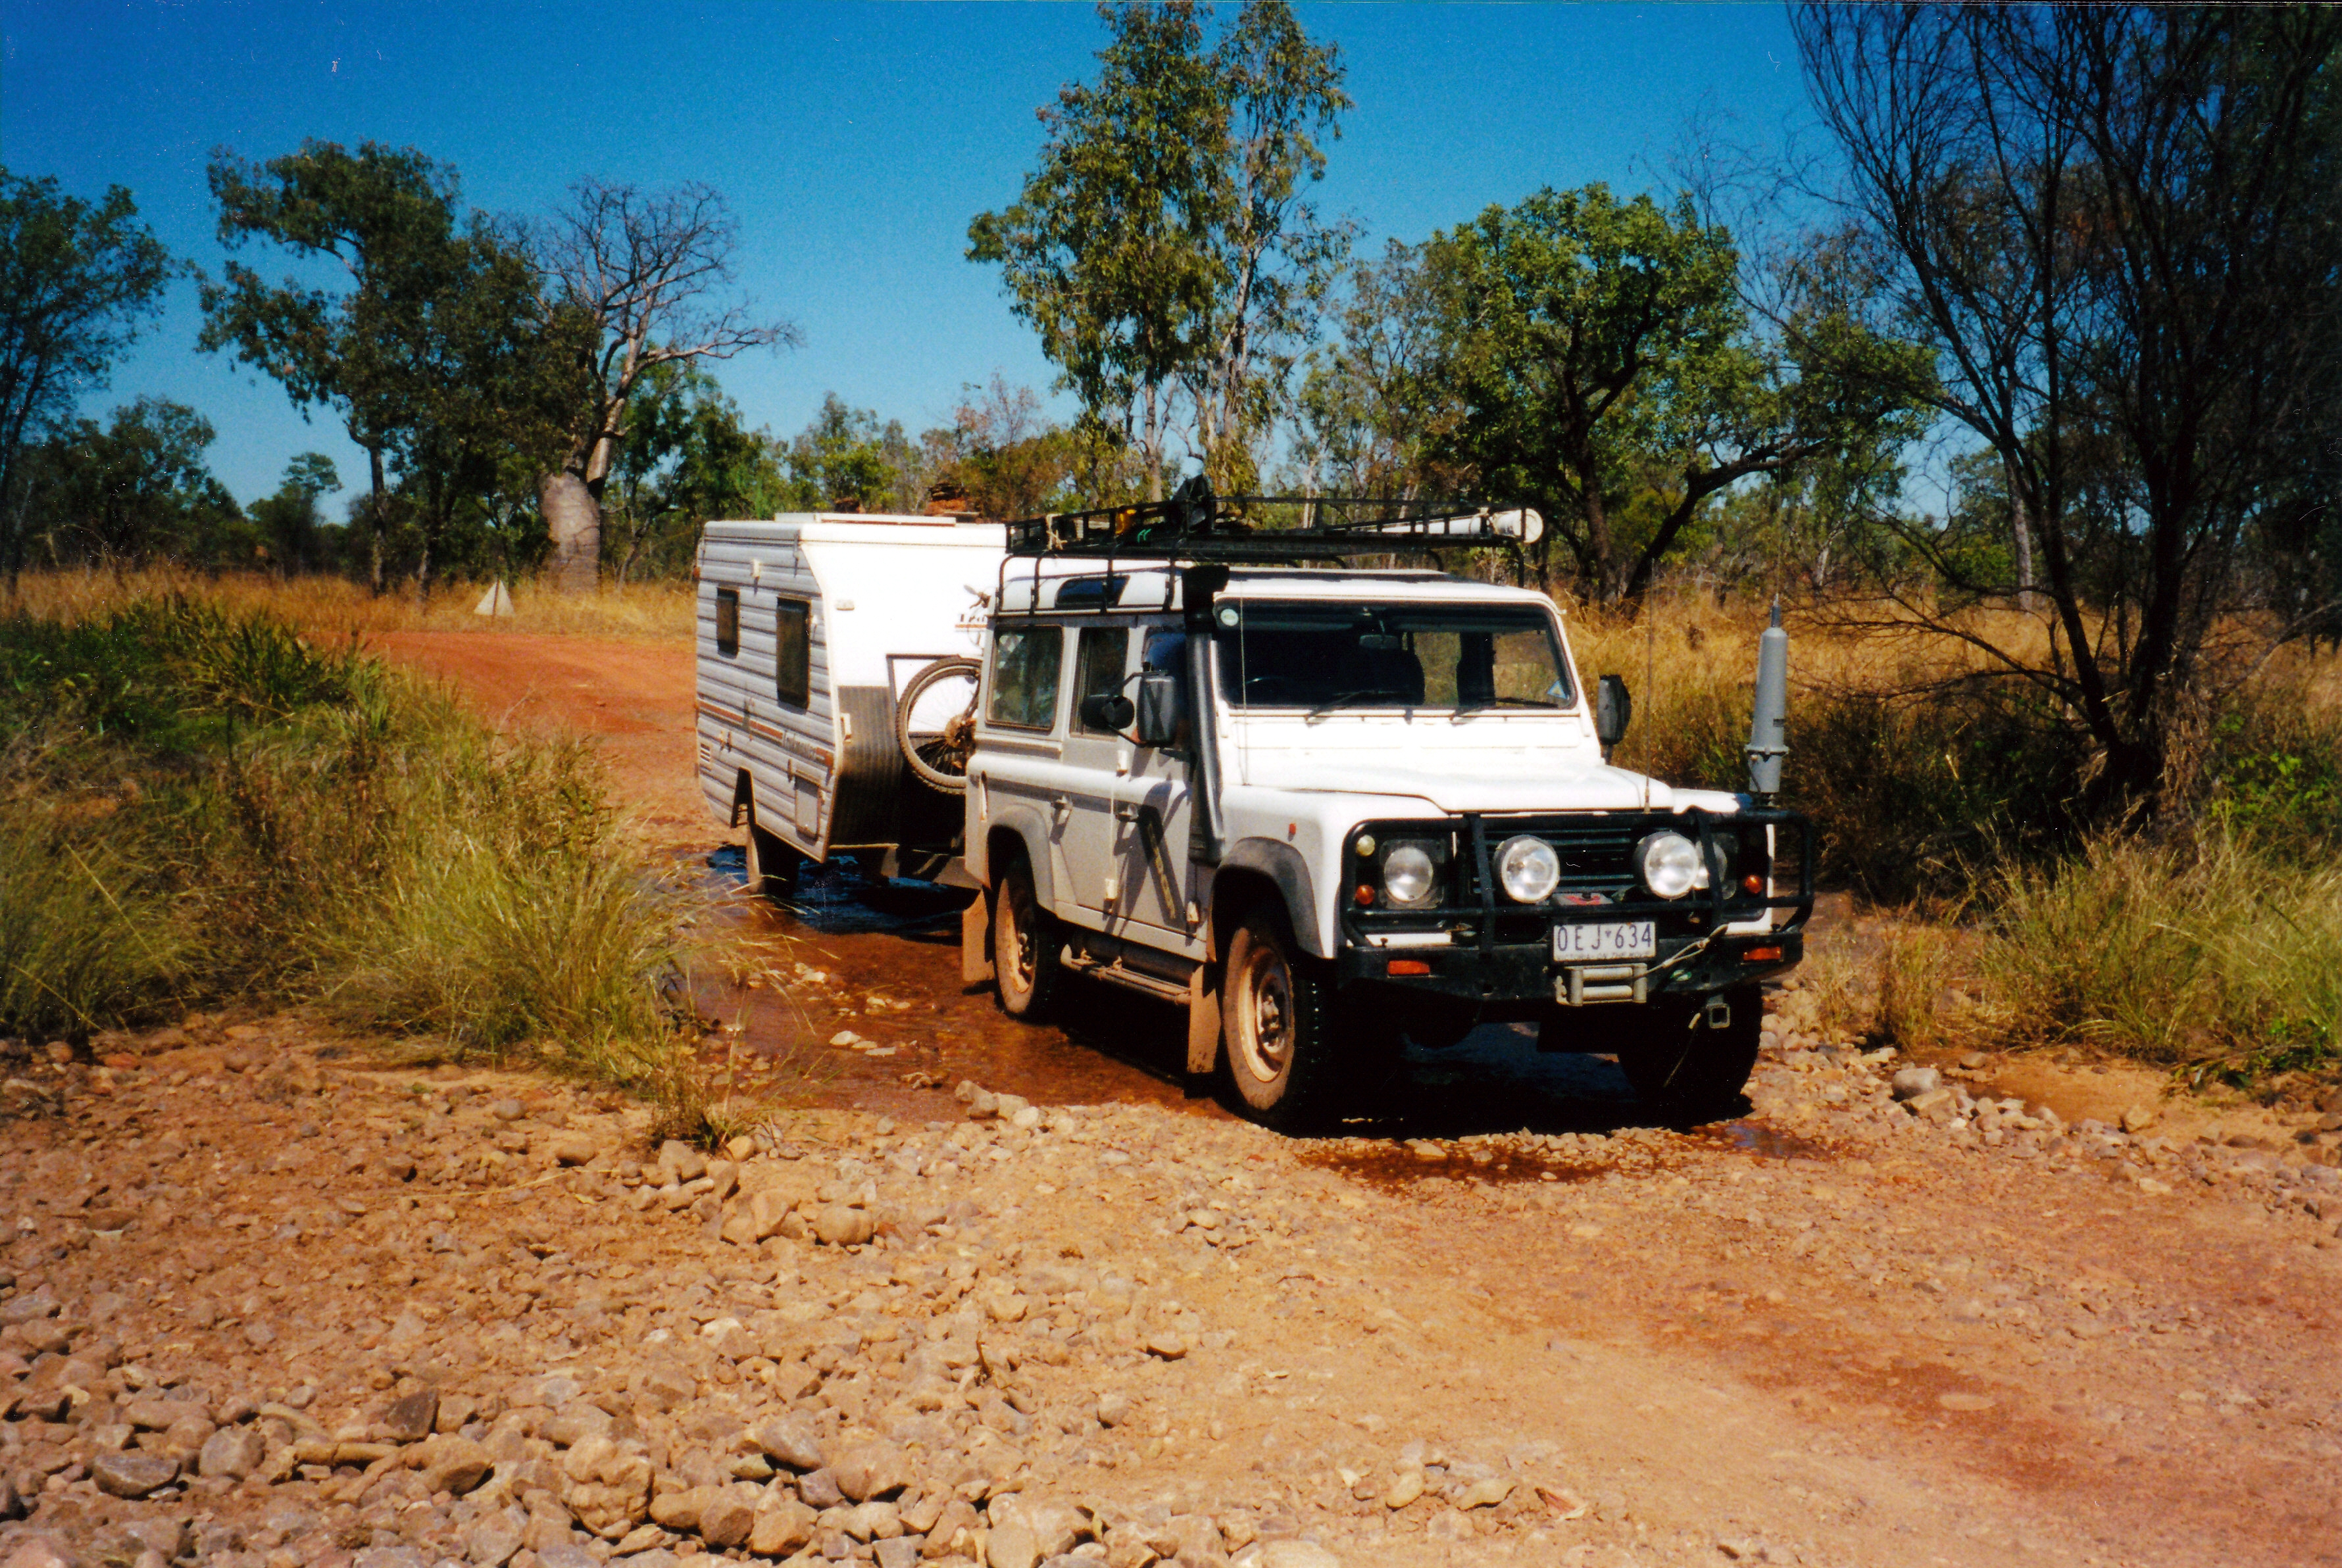 06-23-2000 road into Keep River NP.jpg